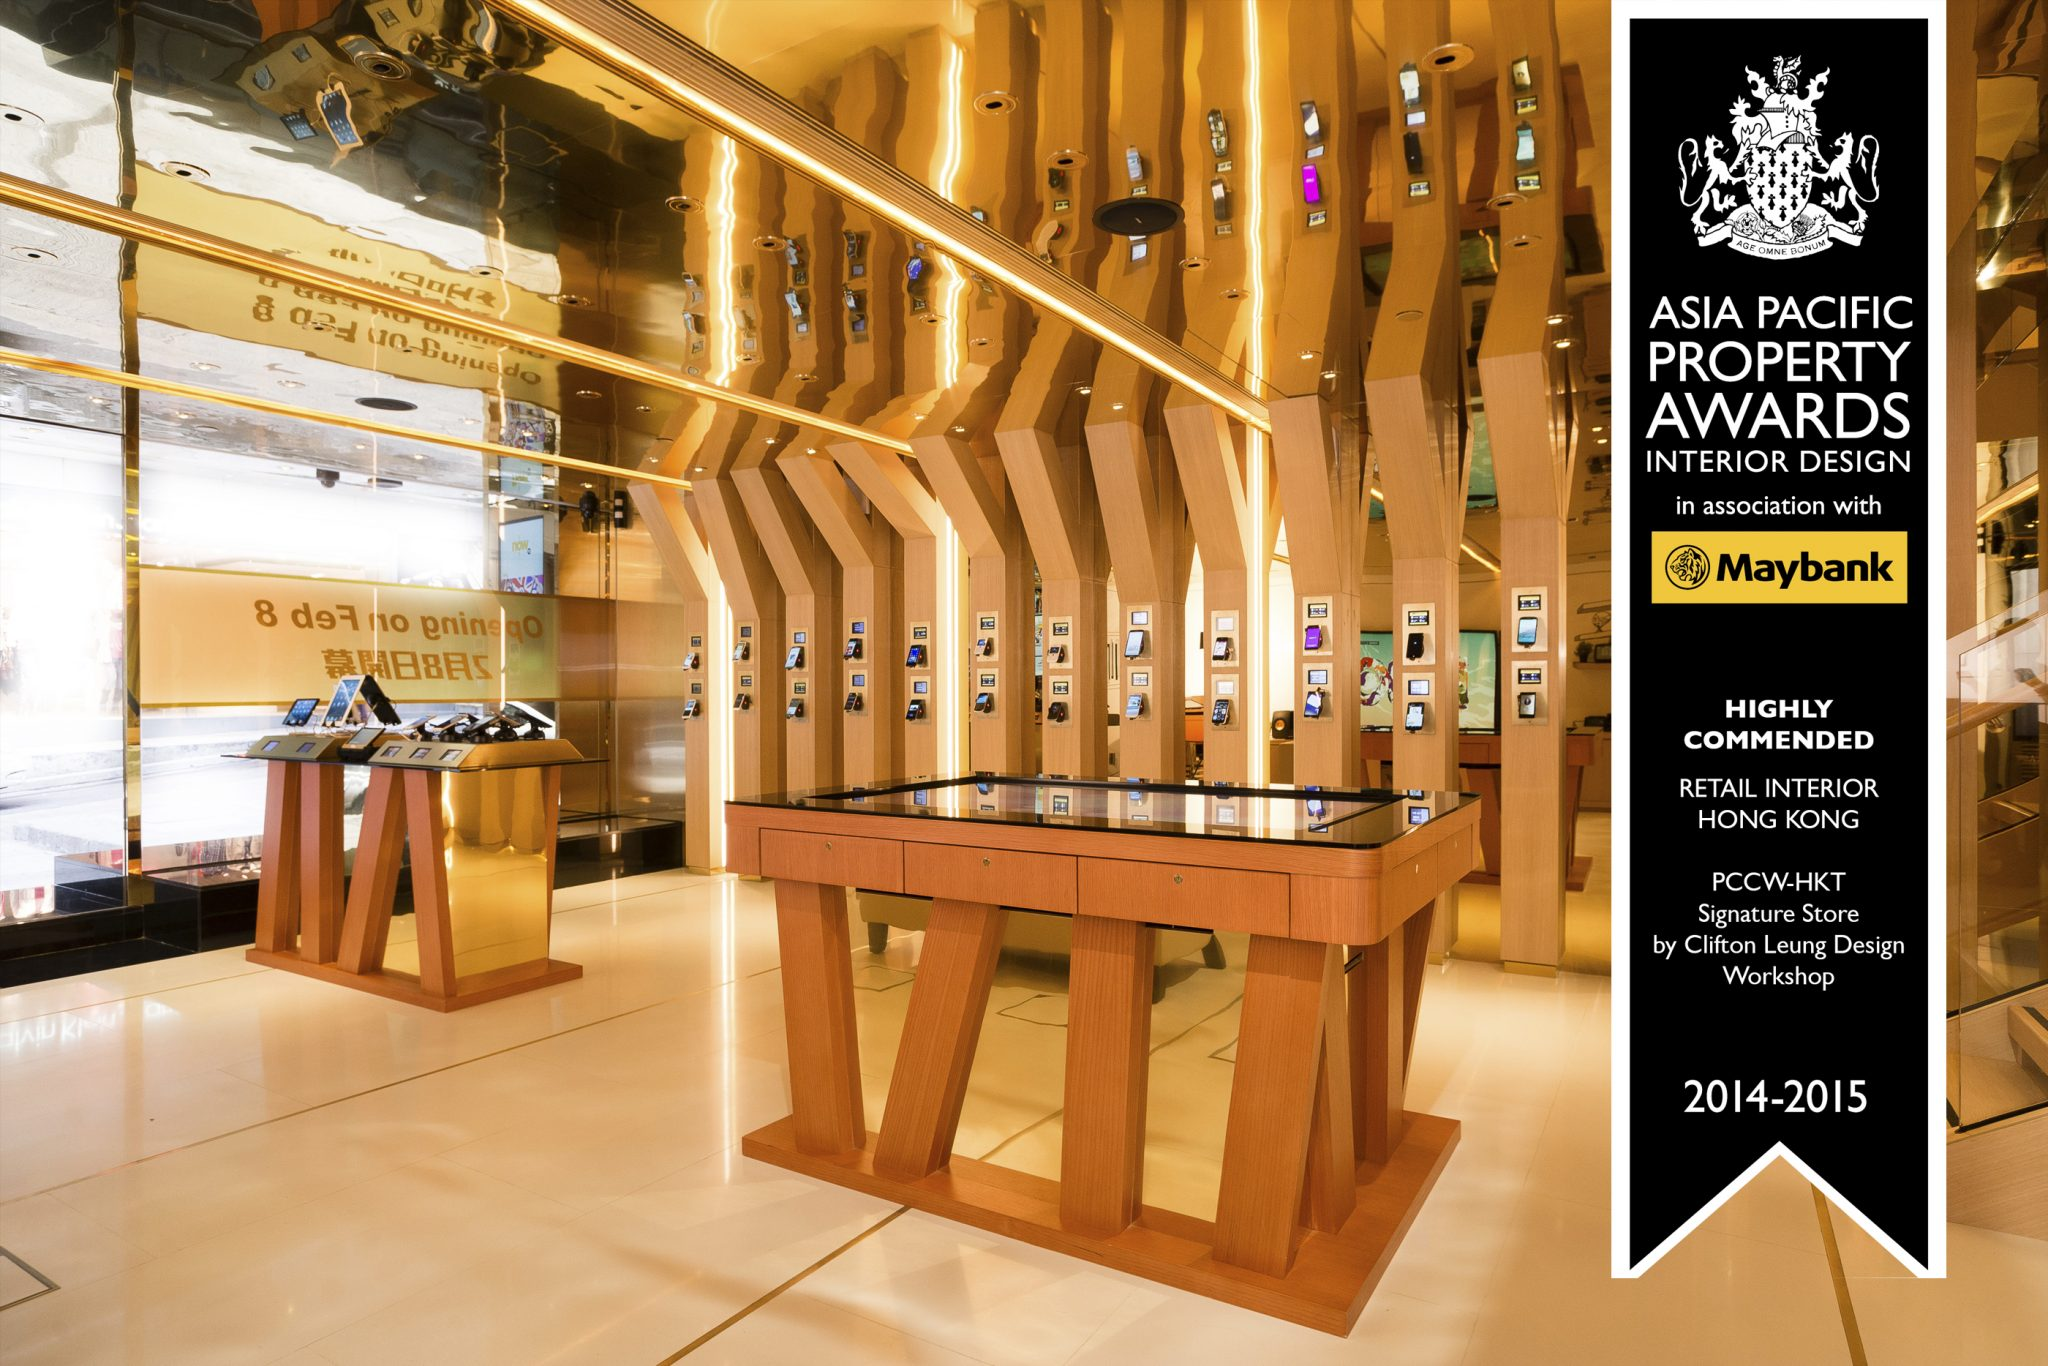 PCCW-HKT Signature Store – Highly Commended, Retail Interior Hong Kong, Asia Pacific Property Awards 2014/15